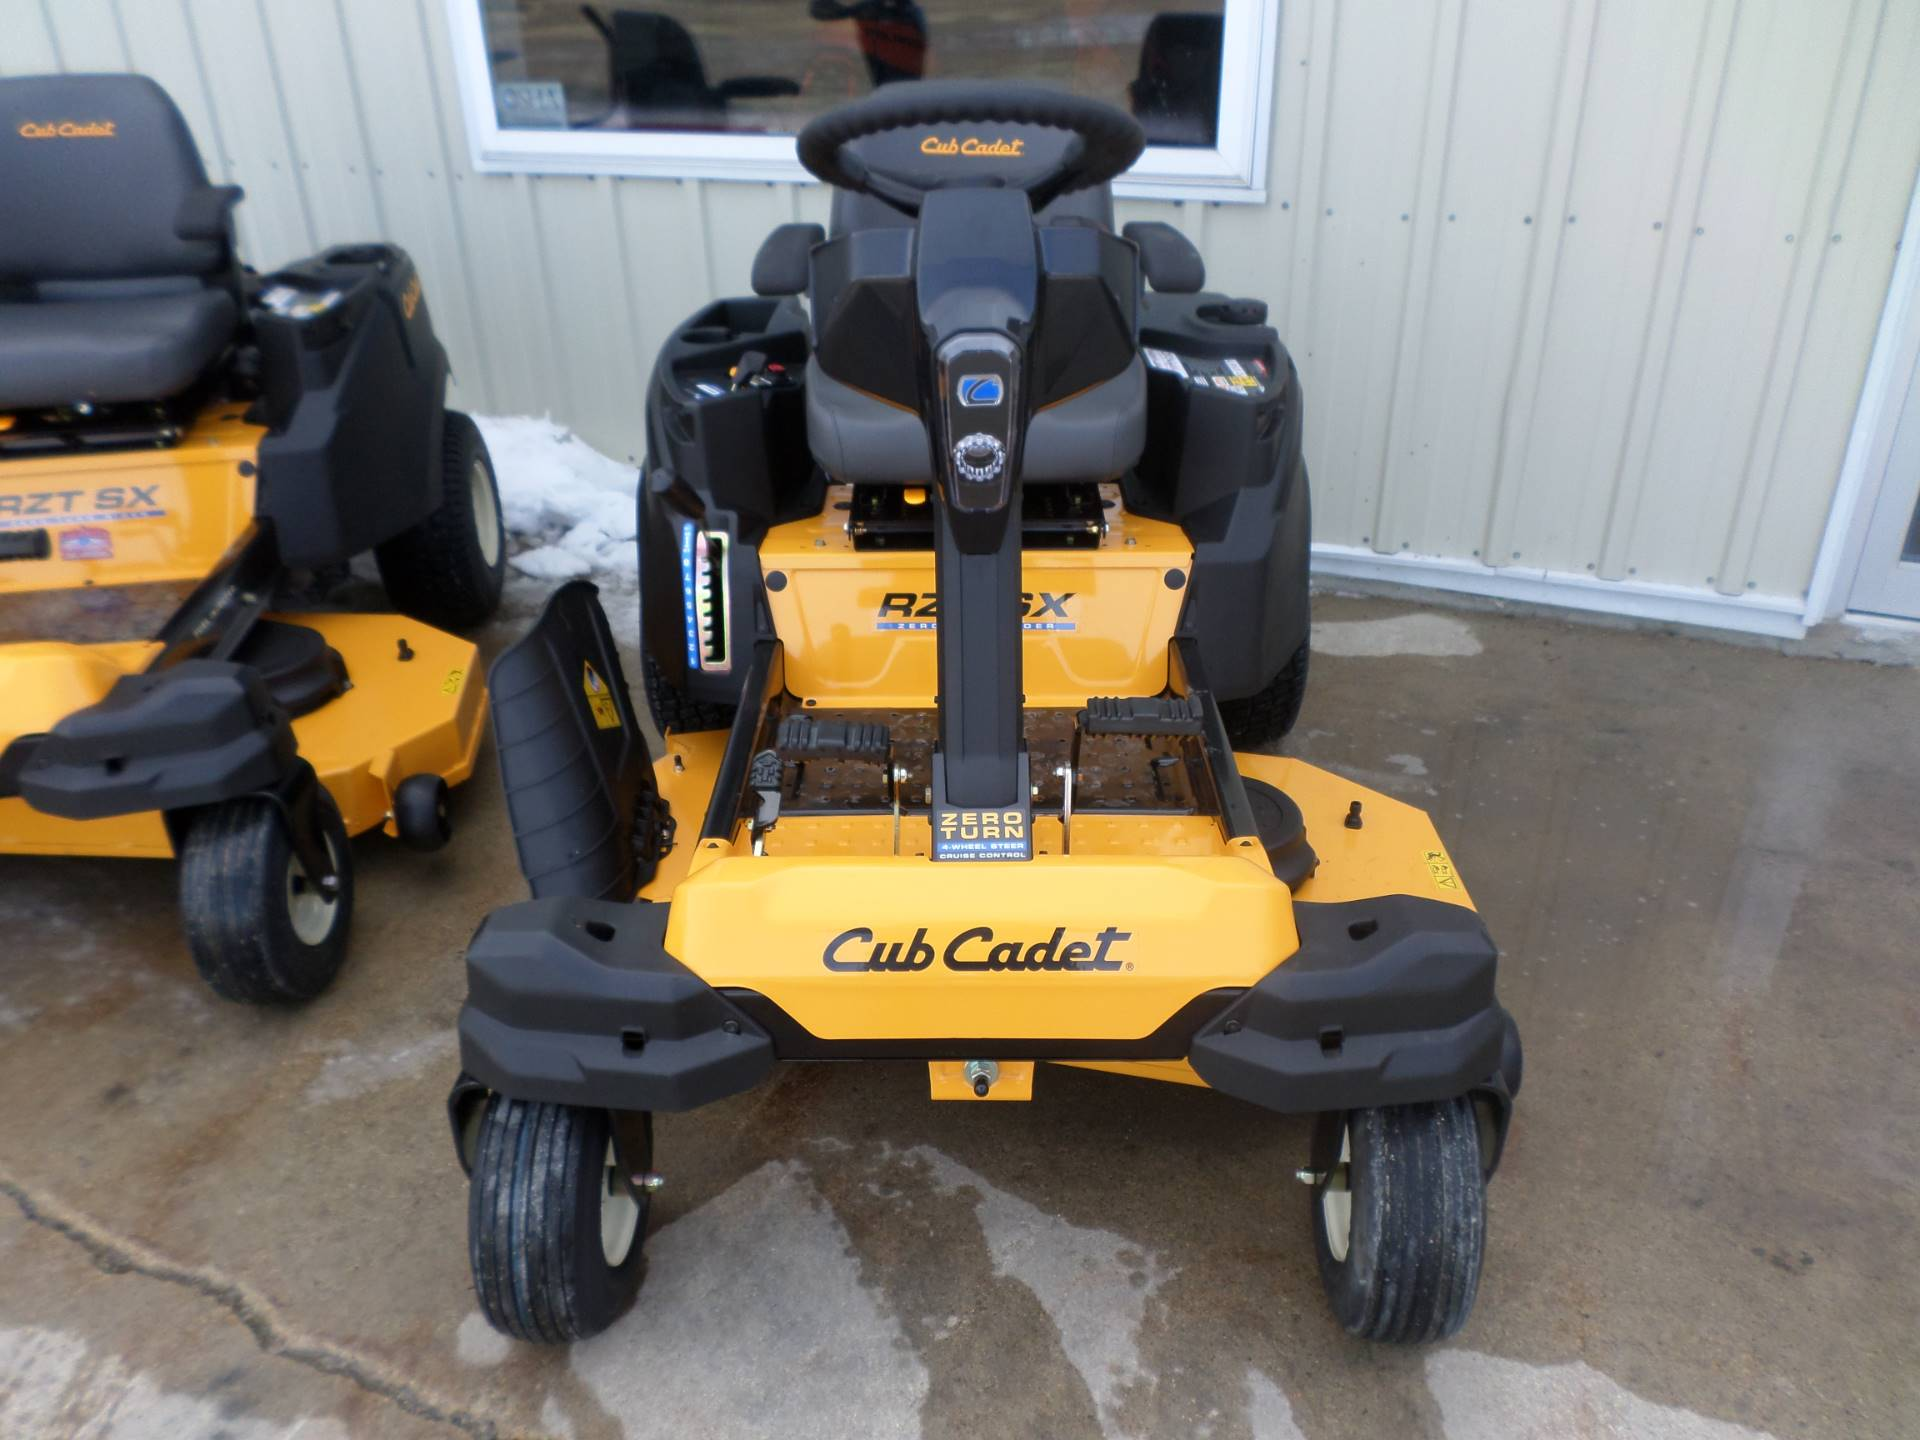 2018 Cub Cadet RZT SX 46 in Lake Mills, Iowa - Photo 3